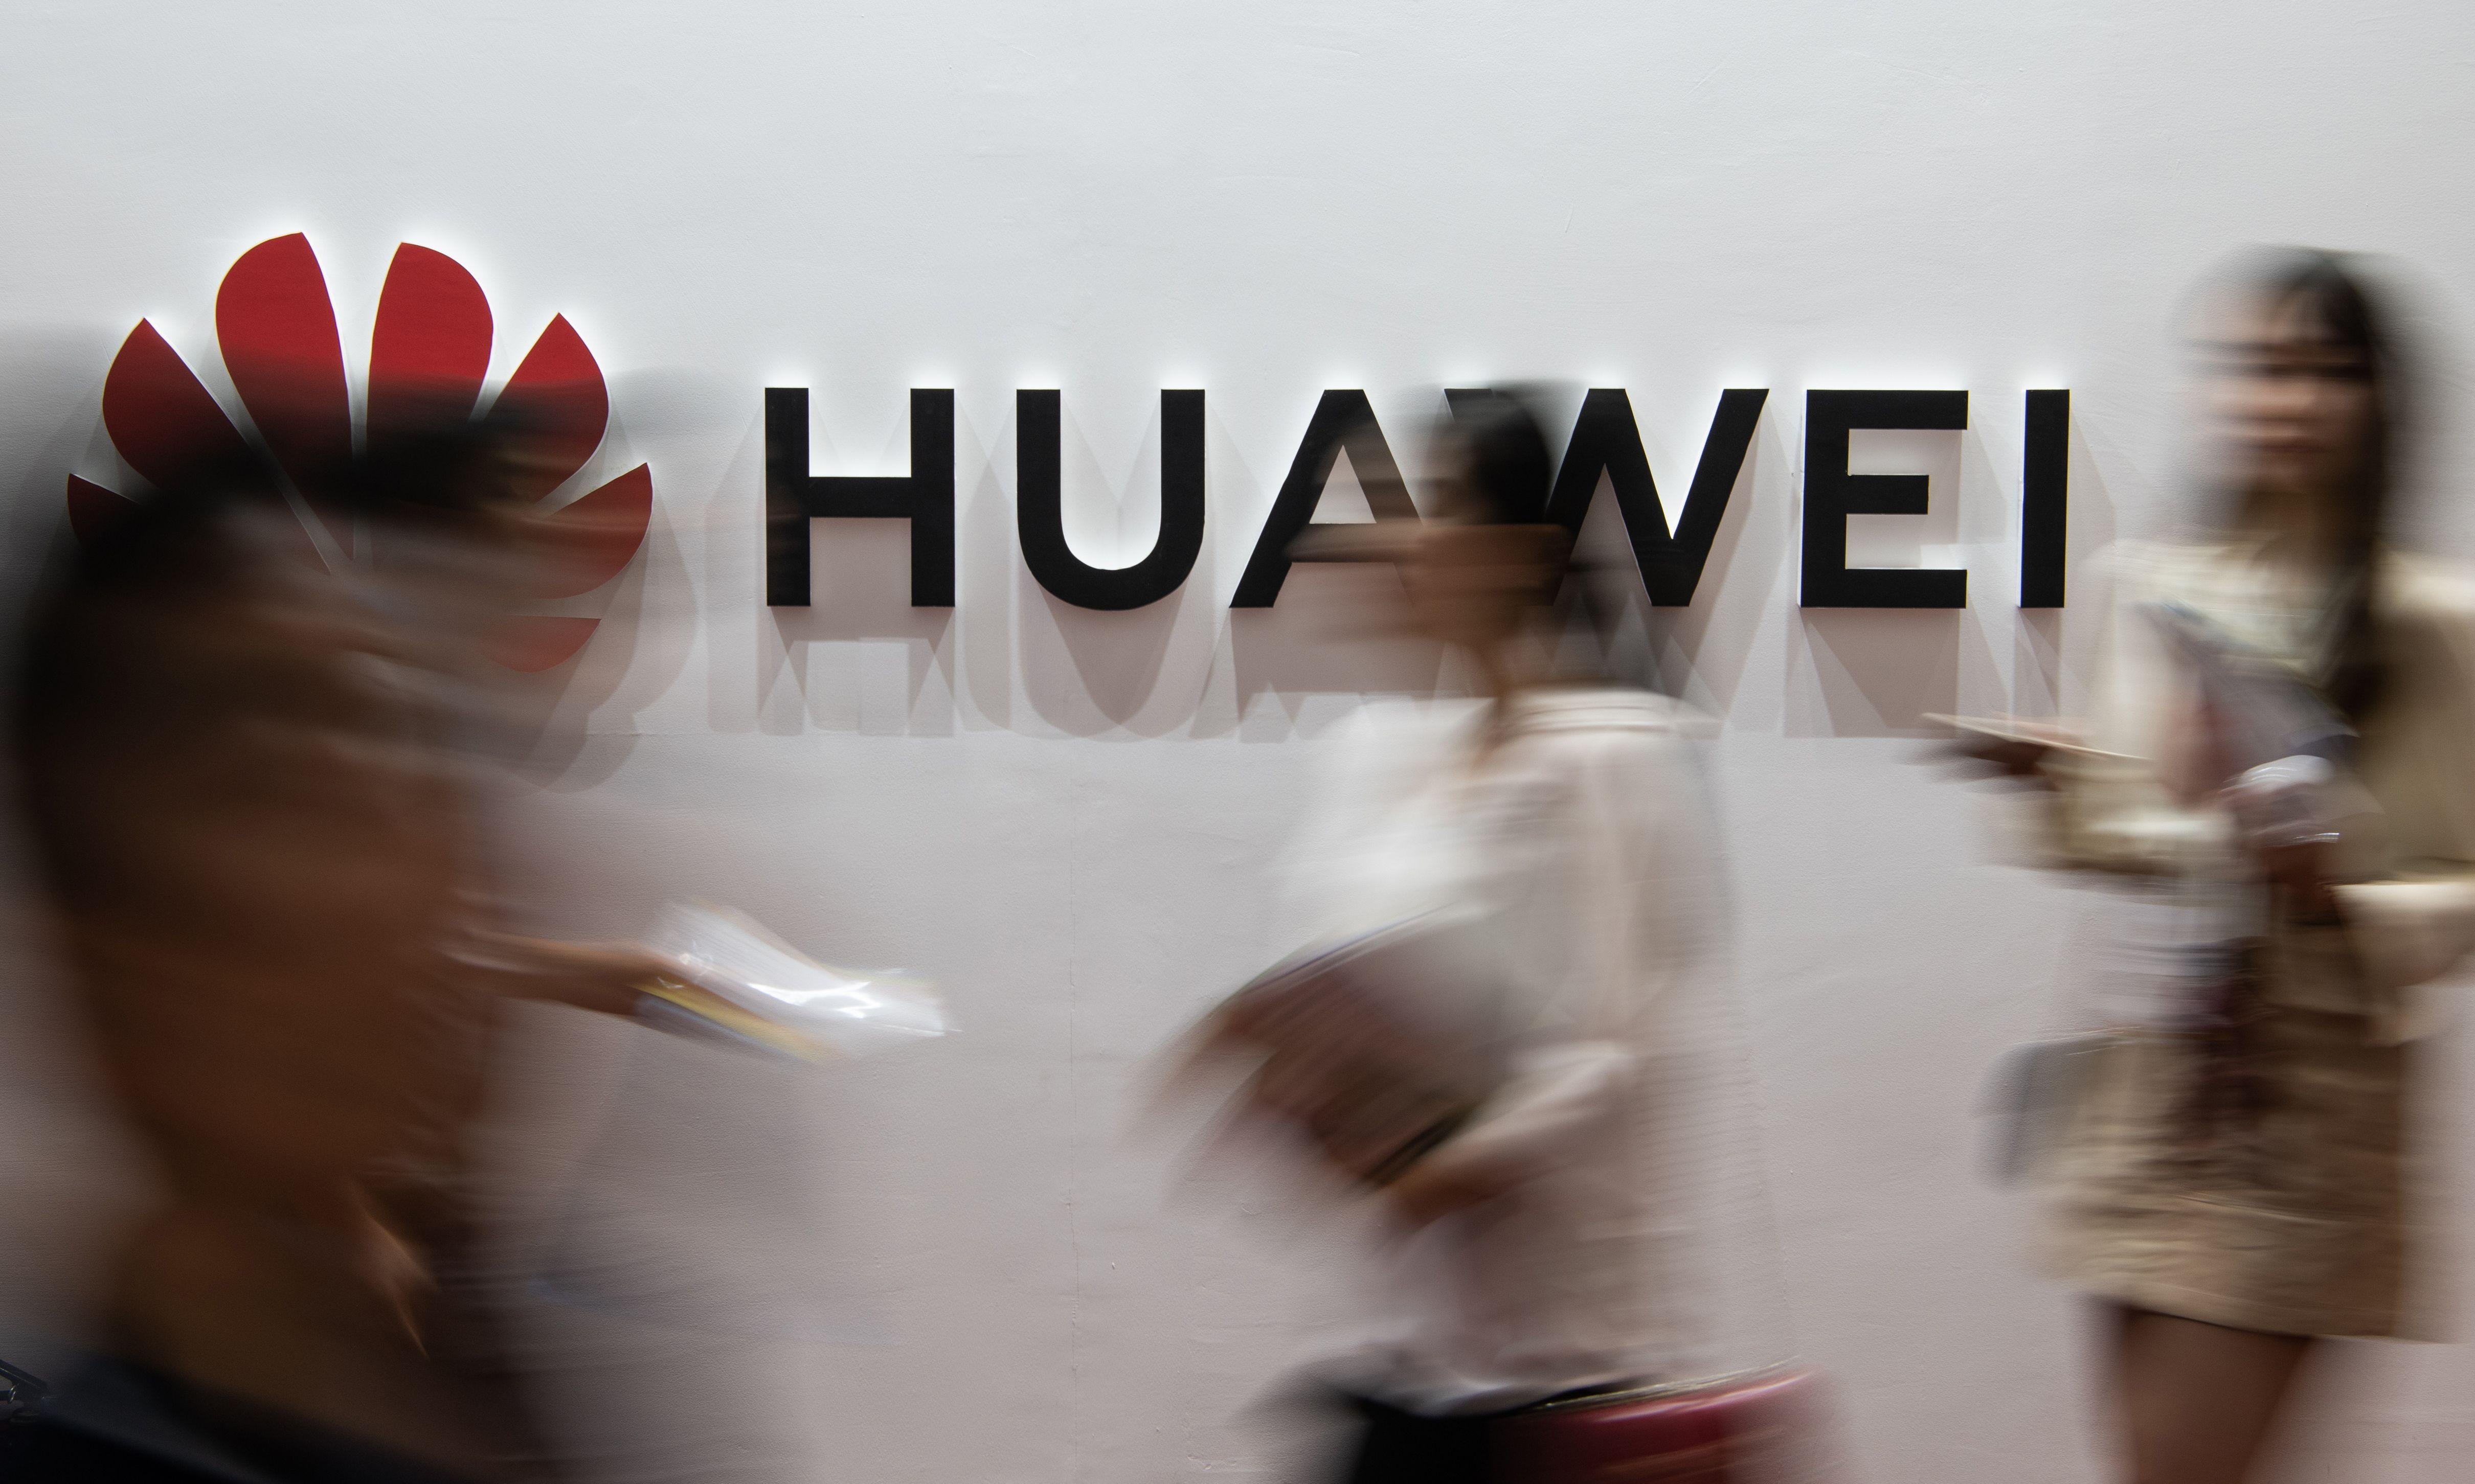 BT and Vodafone to lobby PM to allow use of Huawei equipment